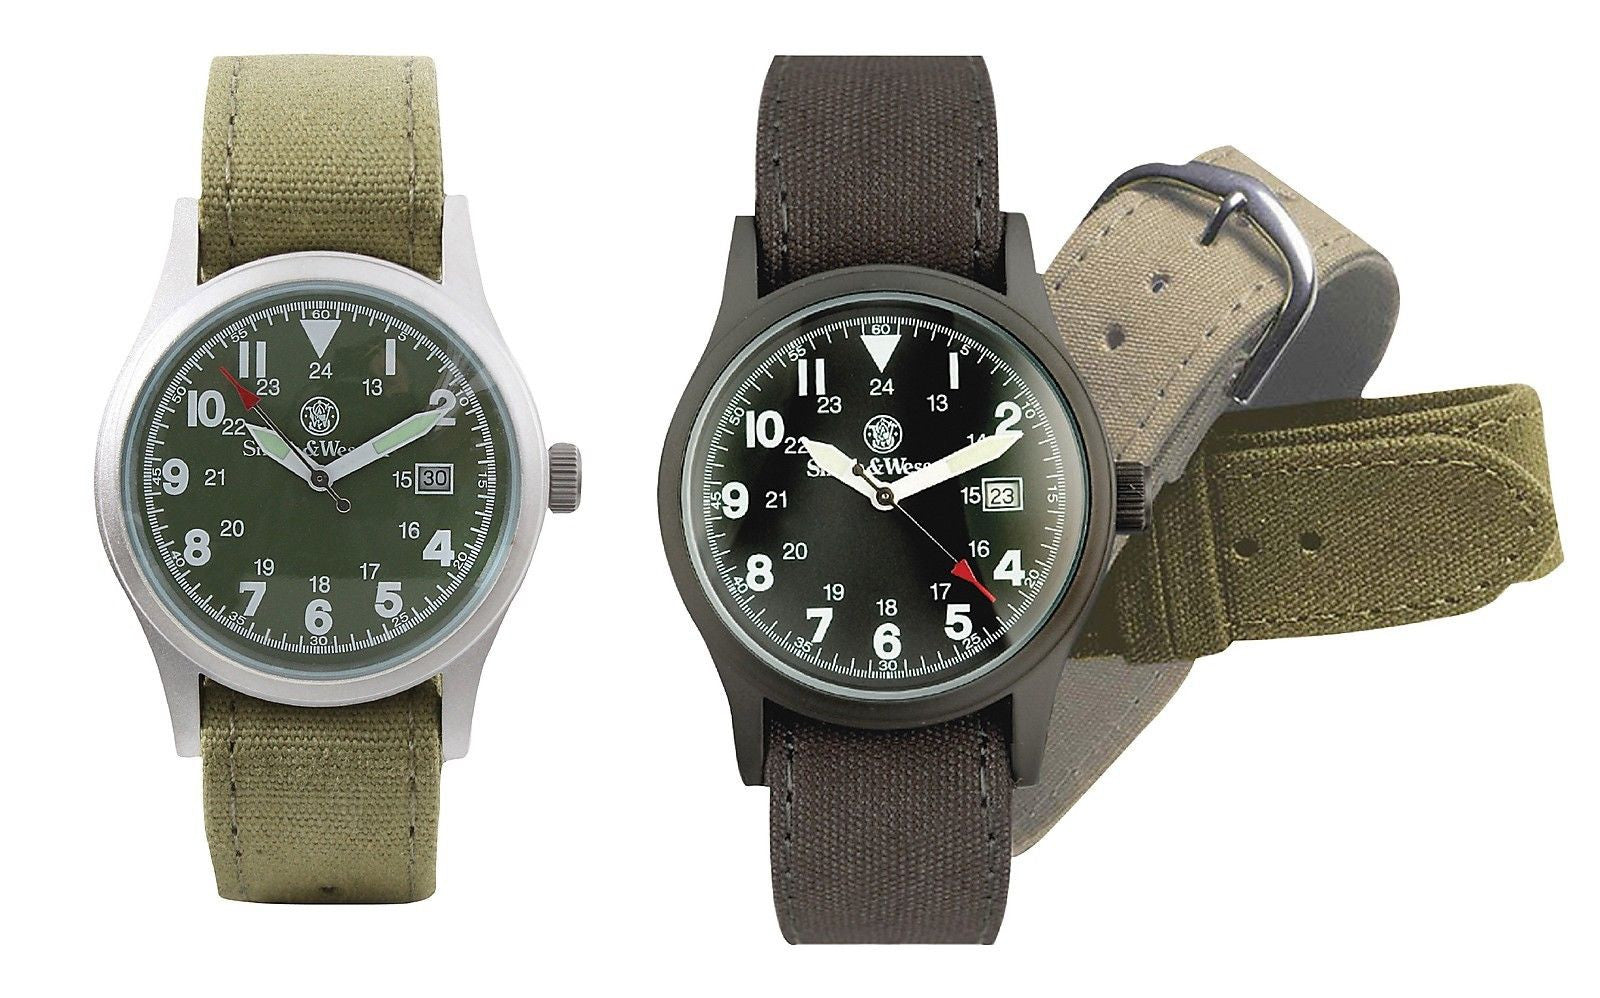 smith wesson military watch w 3 watchbands rugged mens smith wesson military watch w 3 watchbands rugged mens wristwatch watches